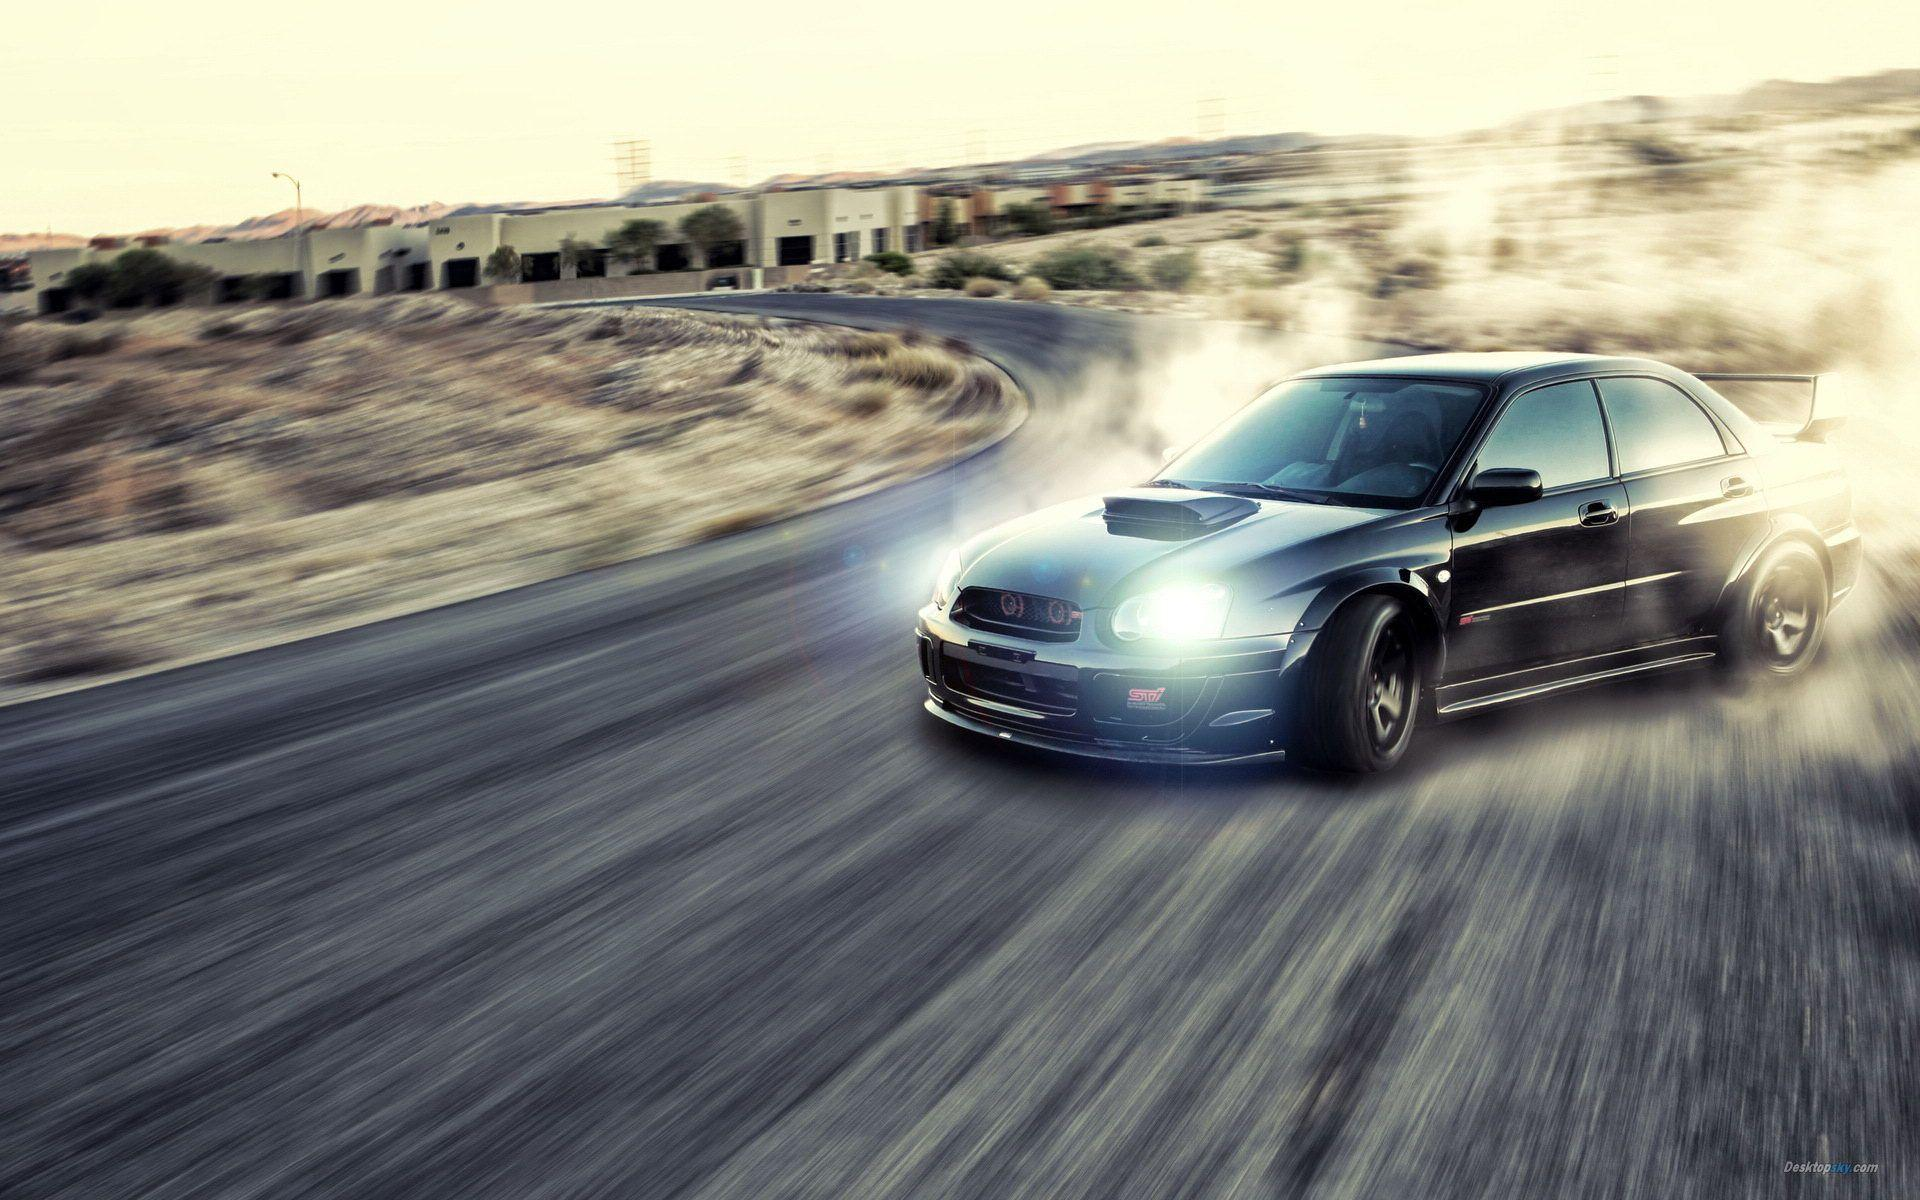 Cool-Cars-Drifting-Wallpapers-1 - HD wallpapers